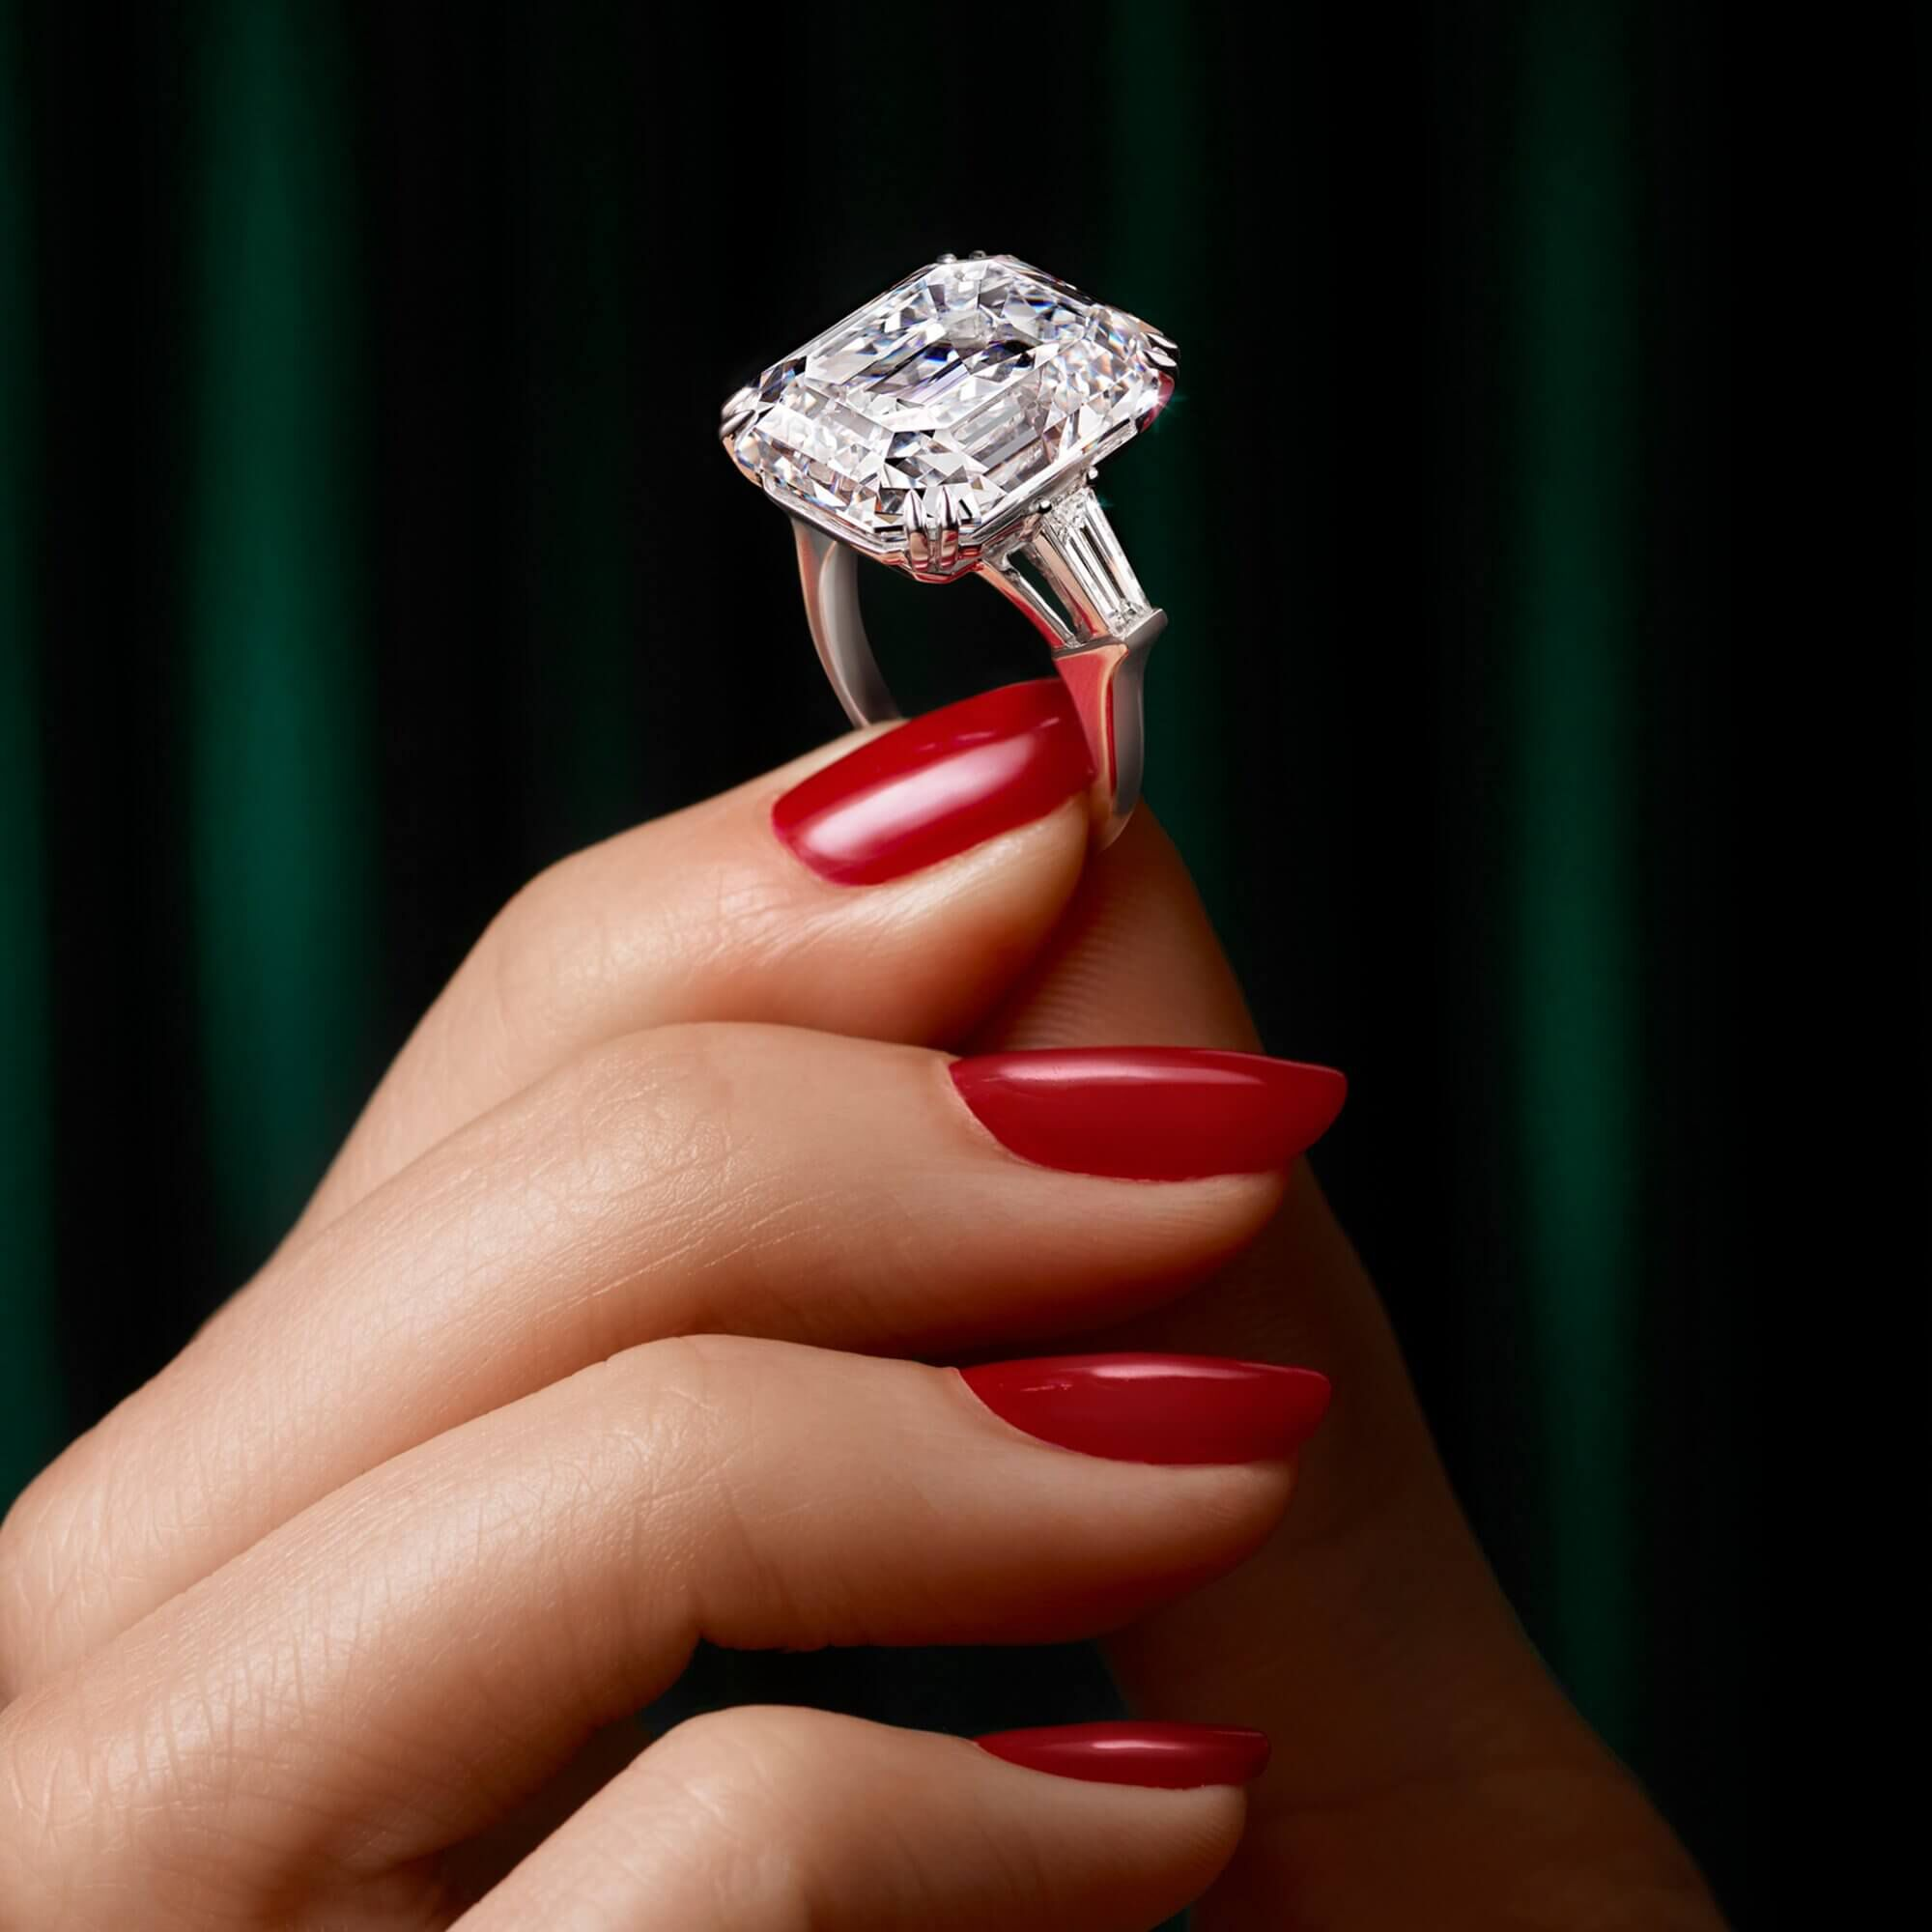 Model holding an emerald cut diamond ring from the Graff high jewellery collection